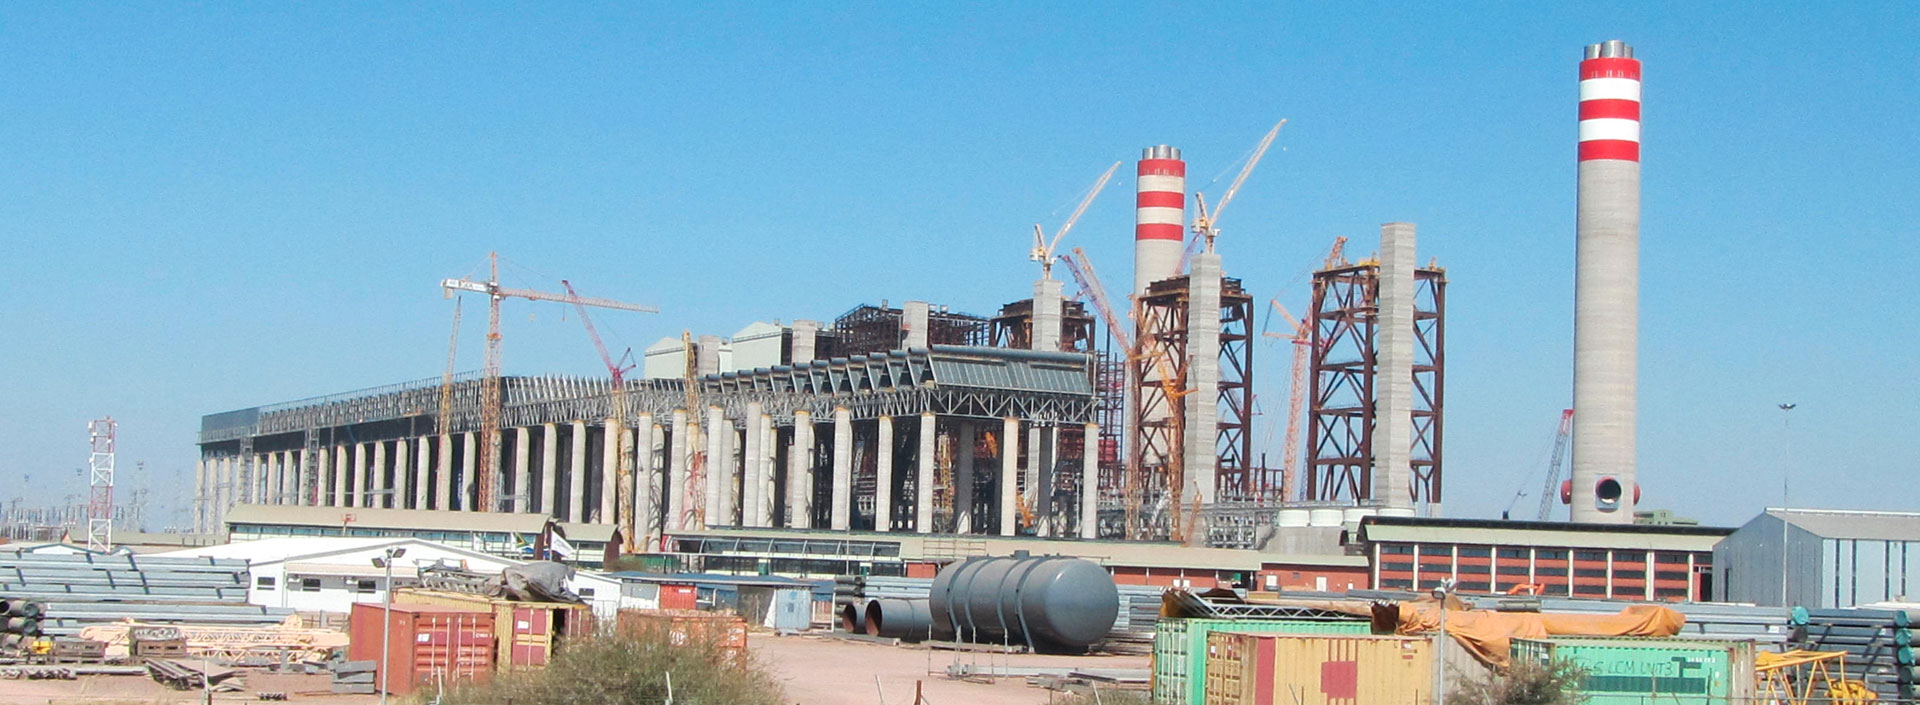 Kusile Power Station Joluka Construction Supplies